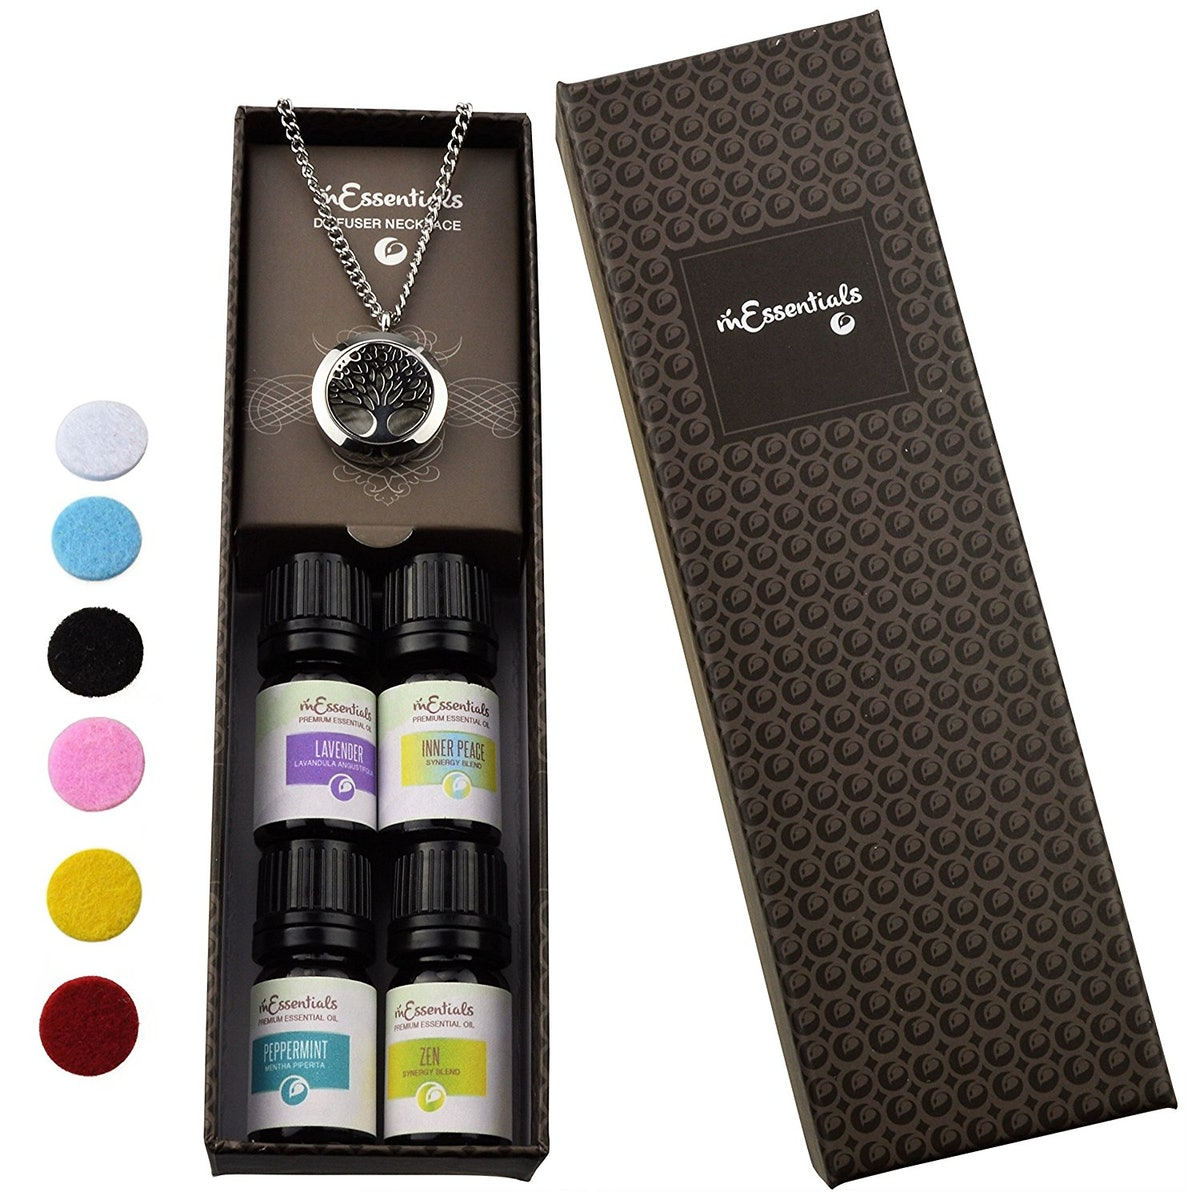 mEssentials Essential Oil Gift Set, 5 ml (5 Pack)